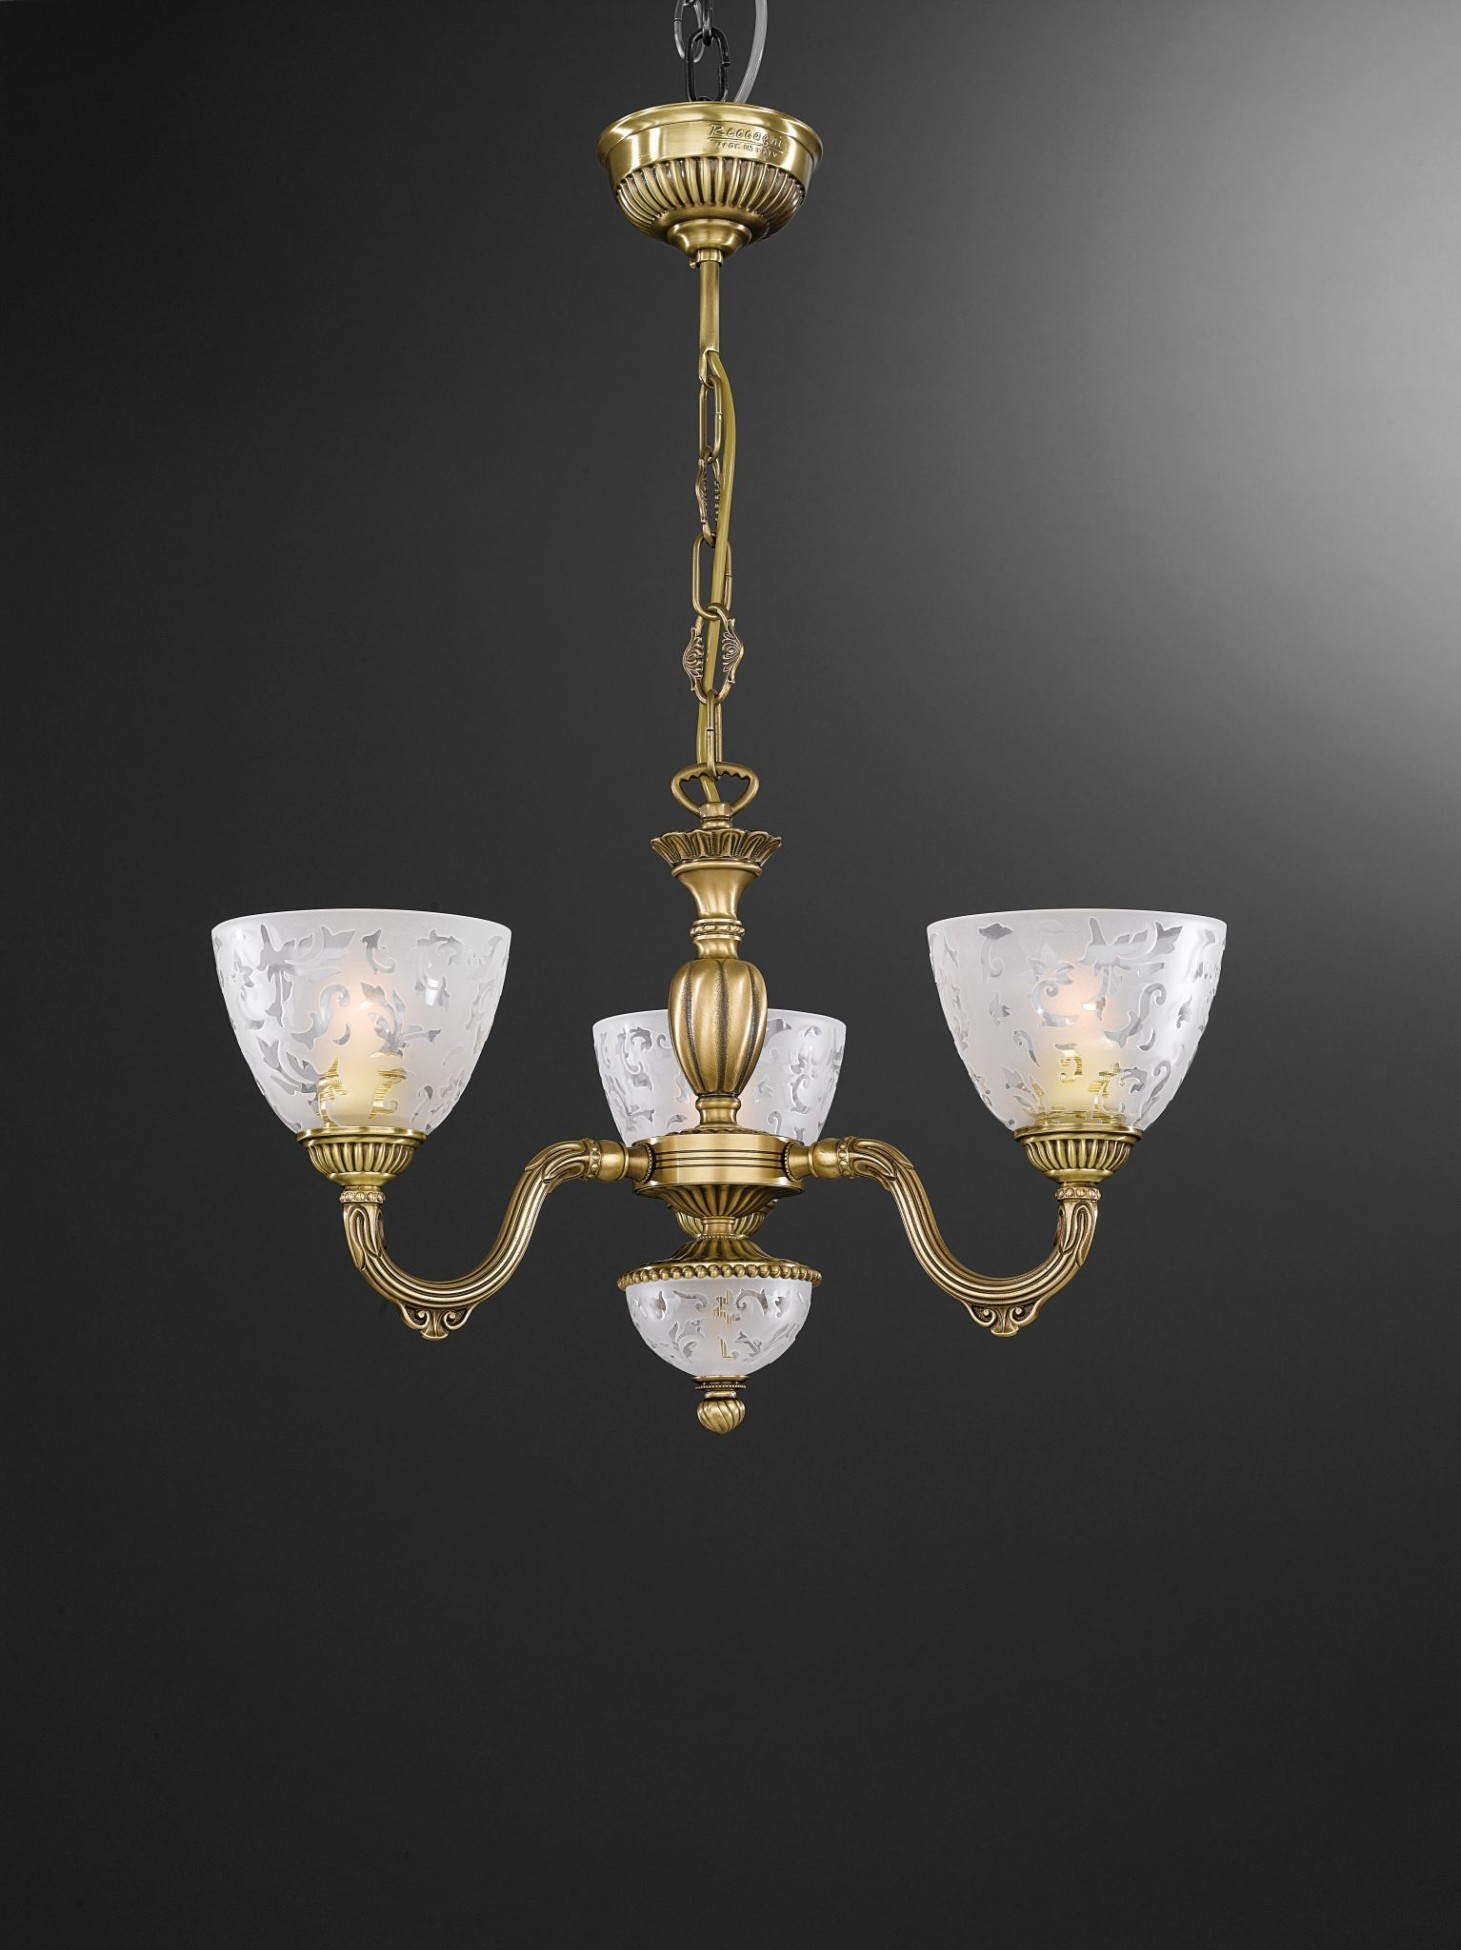 3 light brass chandelier with frosted glasses facing